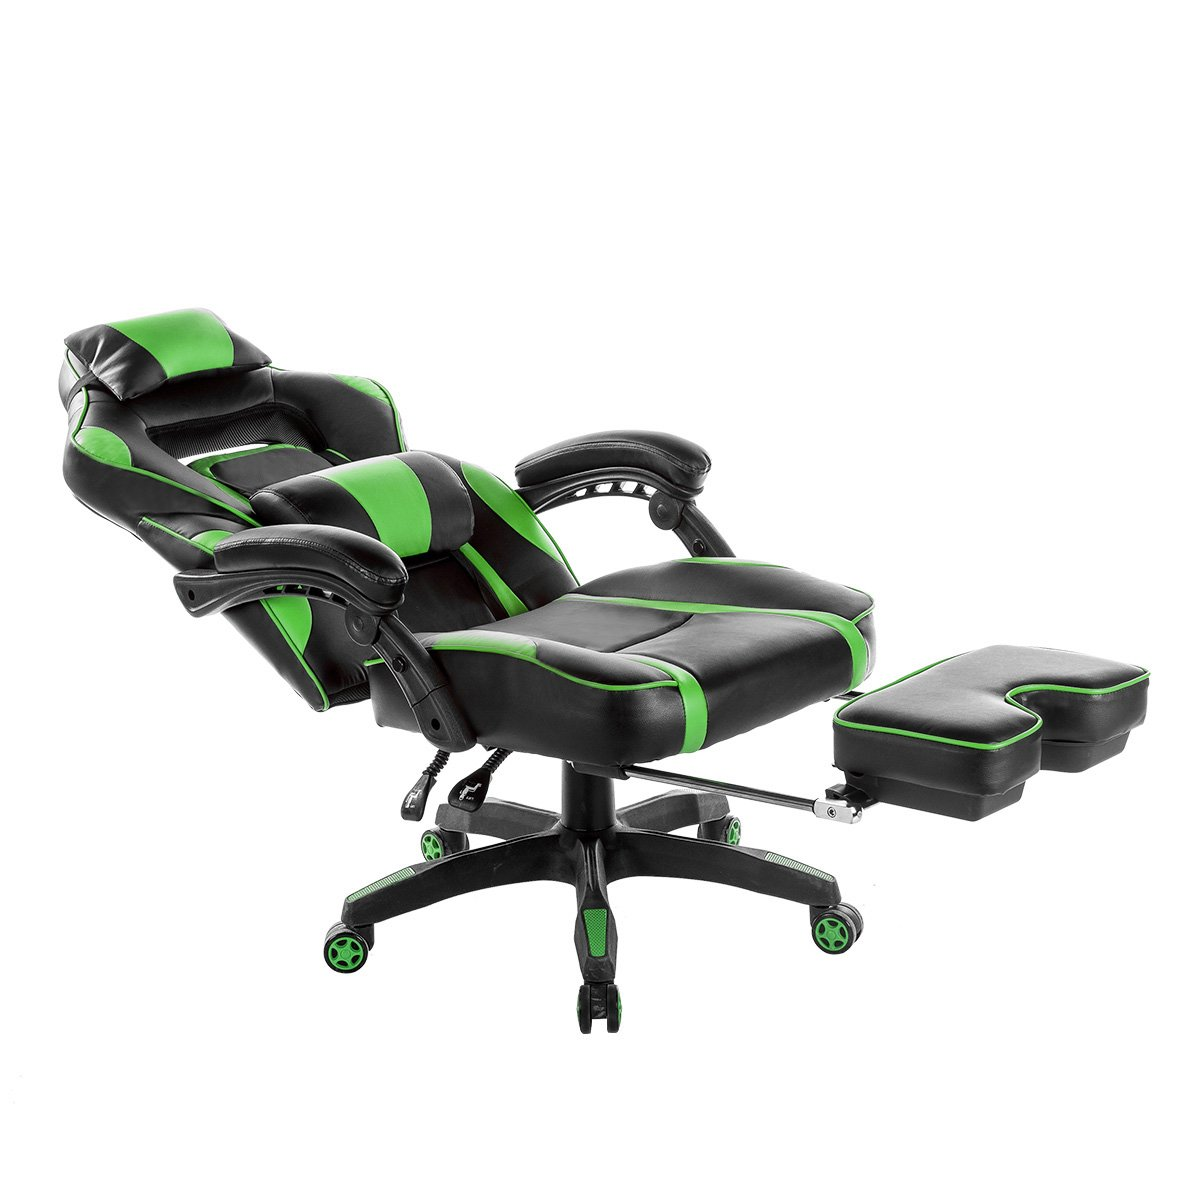 Merax Racing Office Chair Green and Black PU Leather Home Office Chair Computer Gaming Chair with Headrest and Lumbar Support (Green)